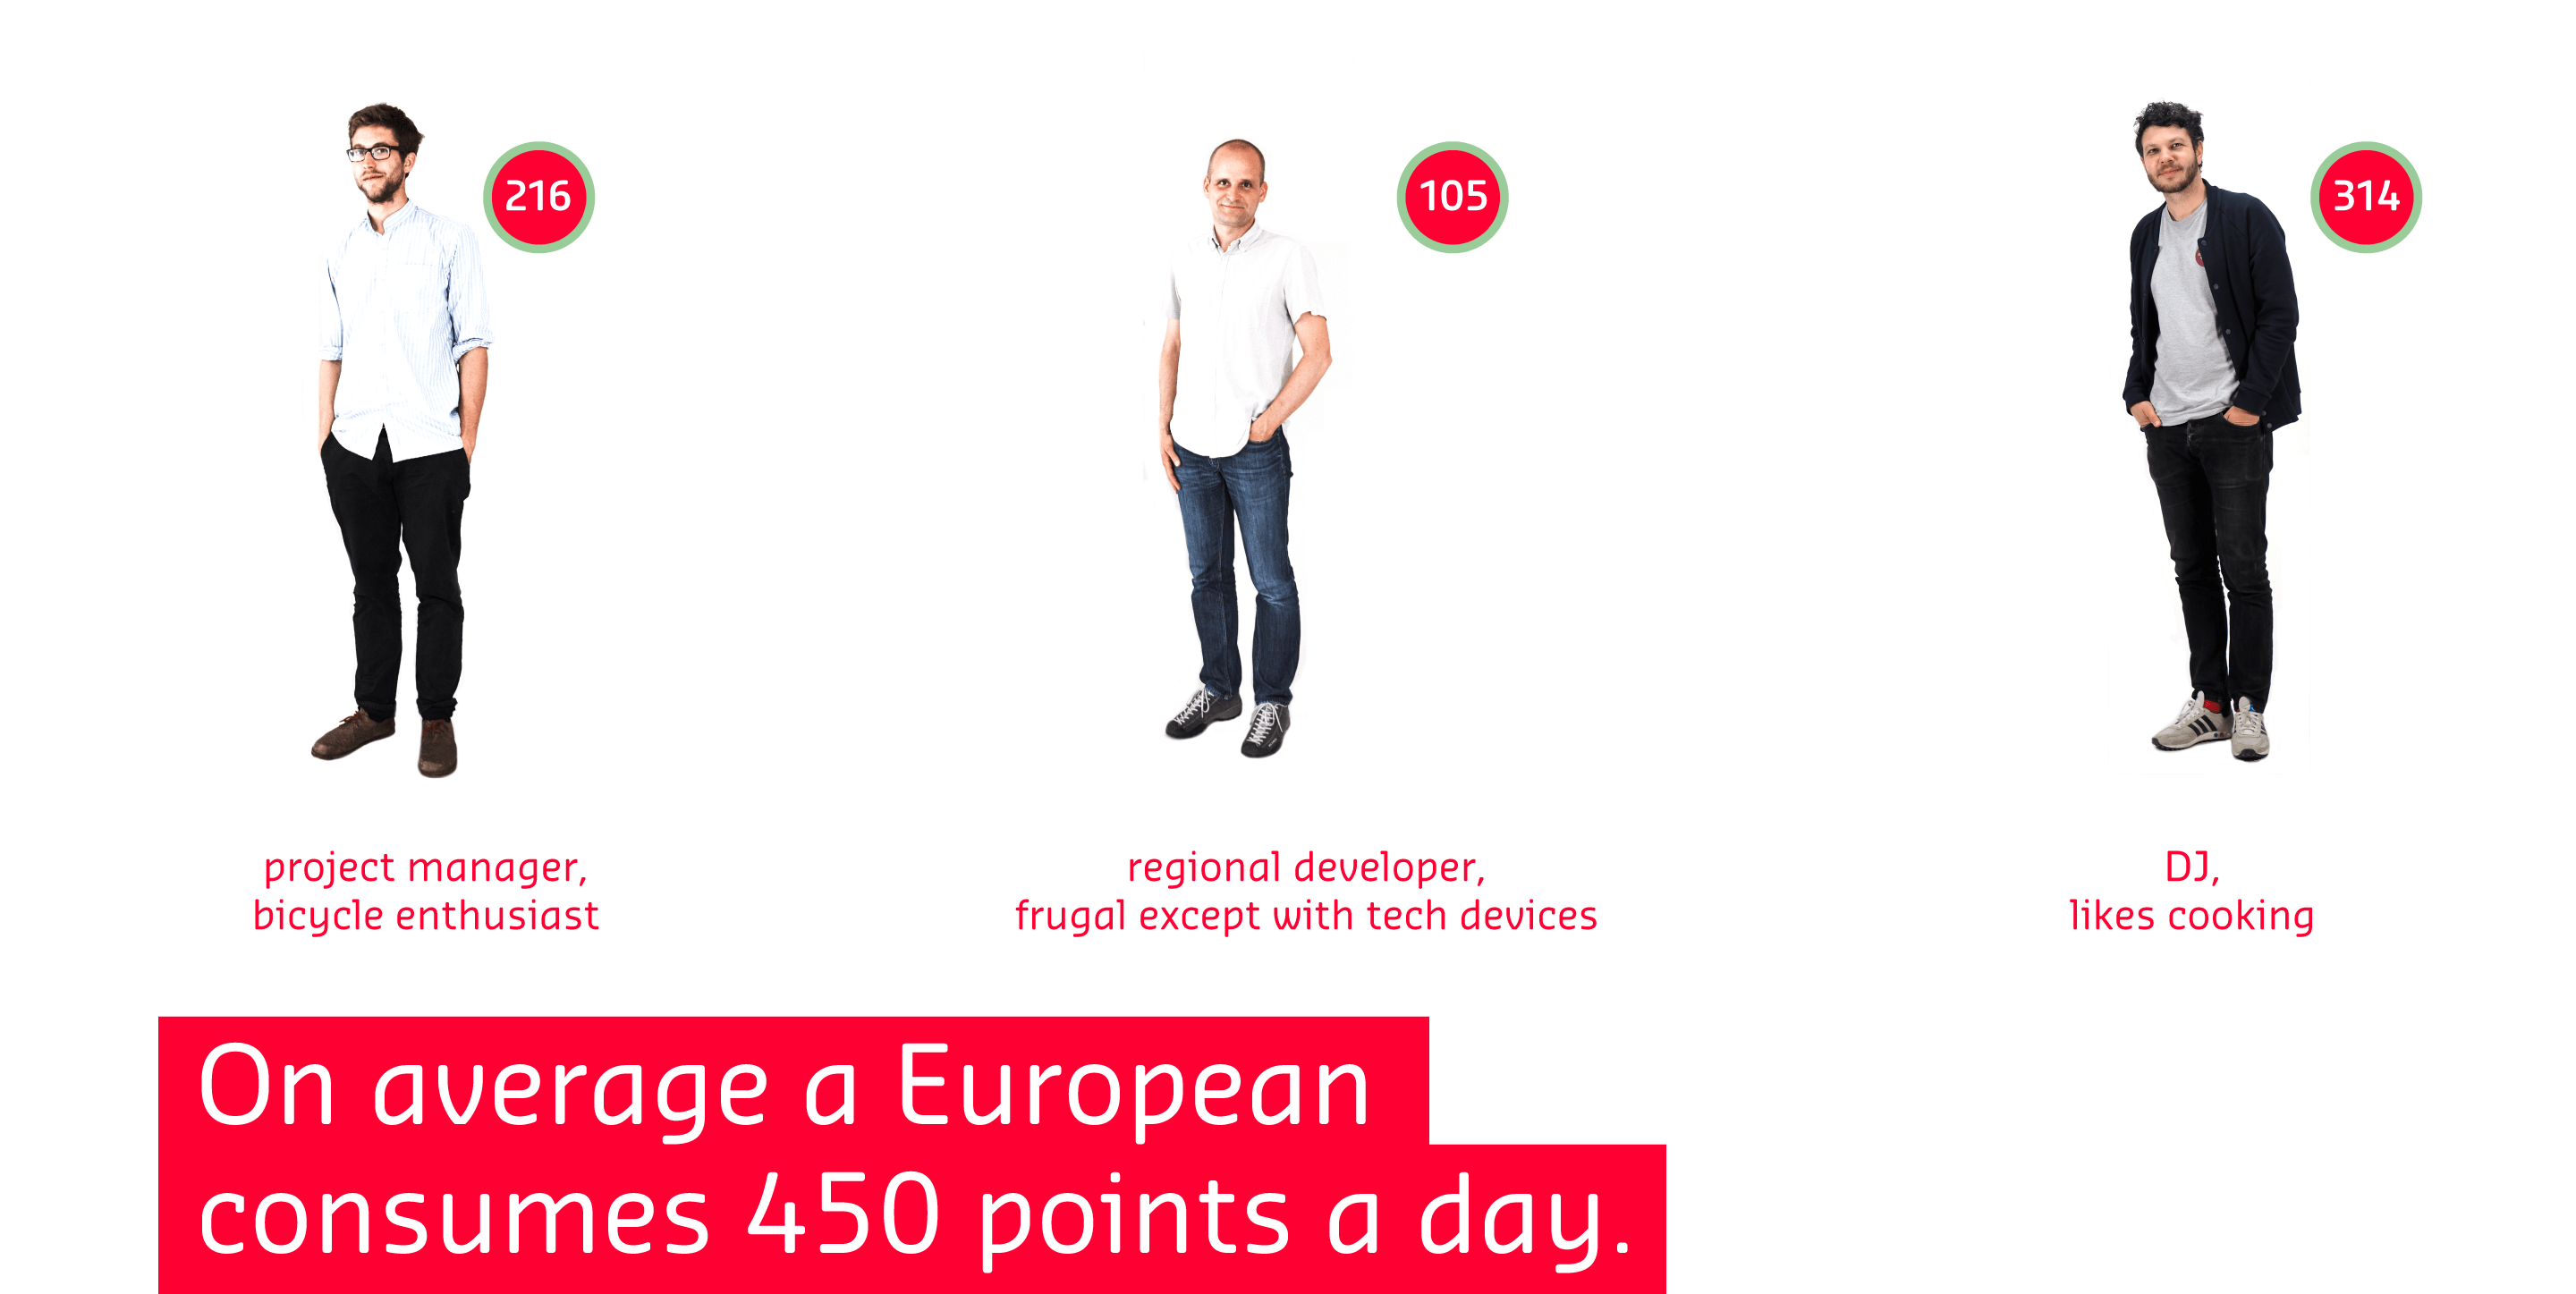 On average a European consumes 450 points a day